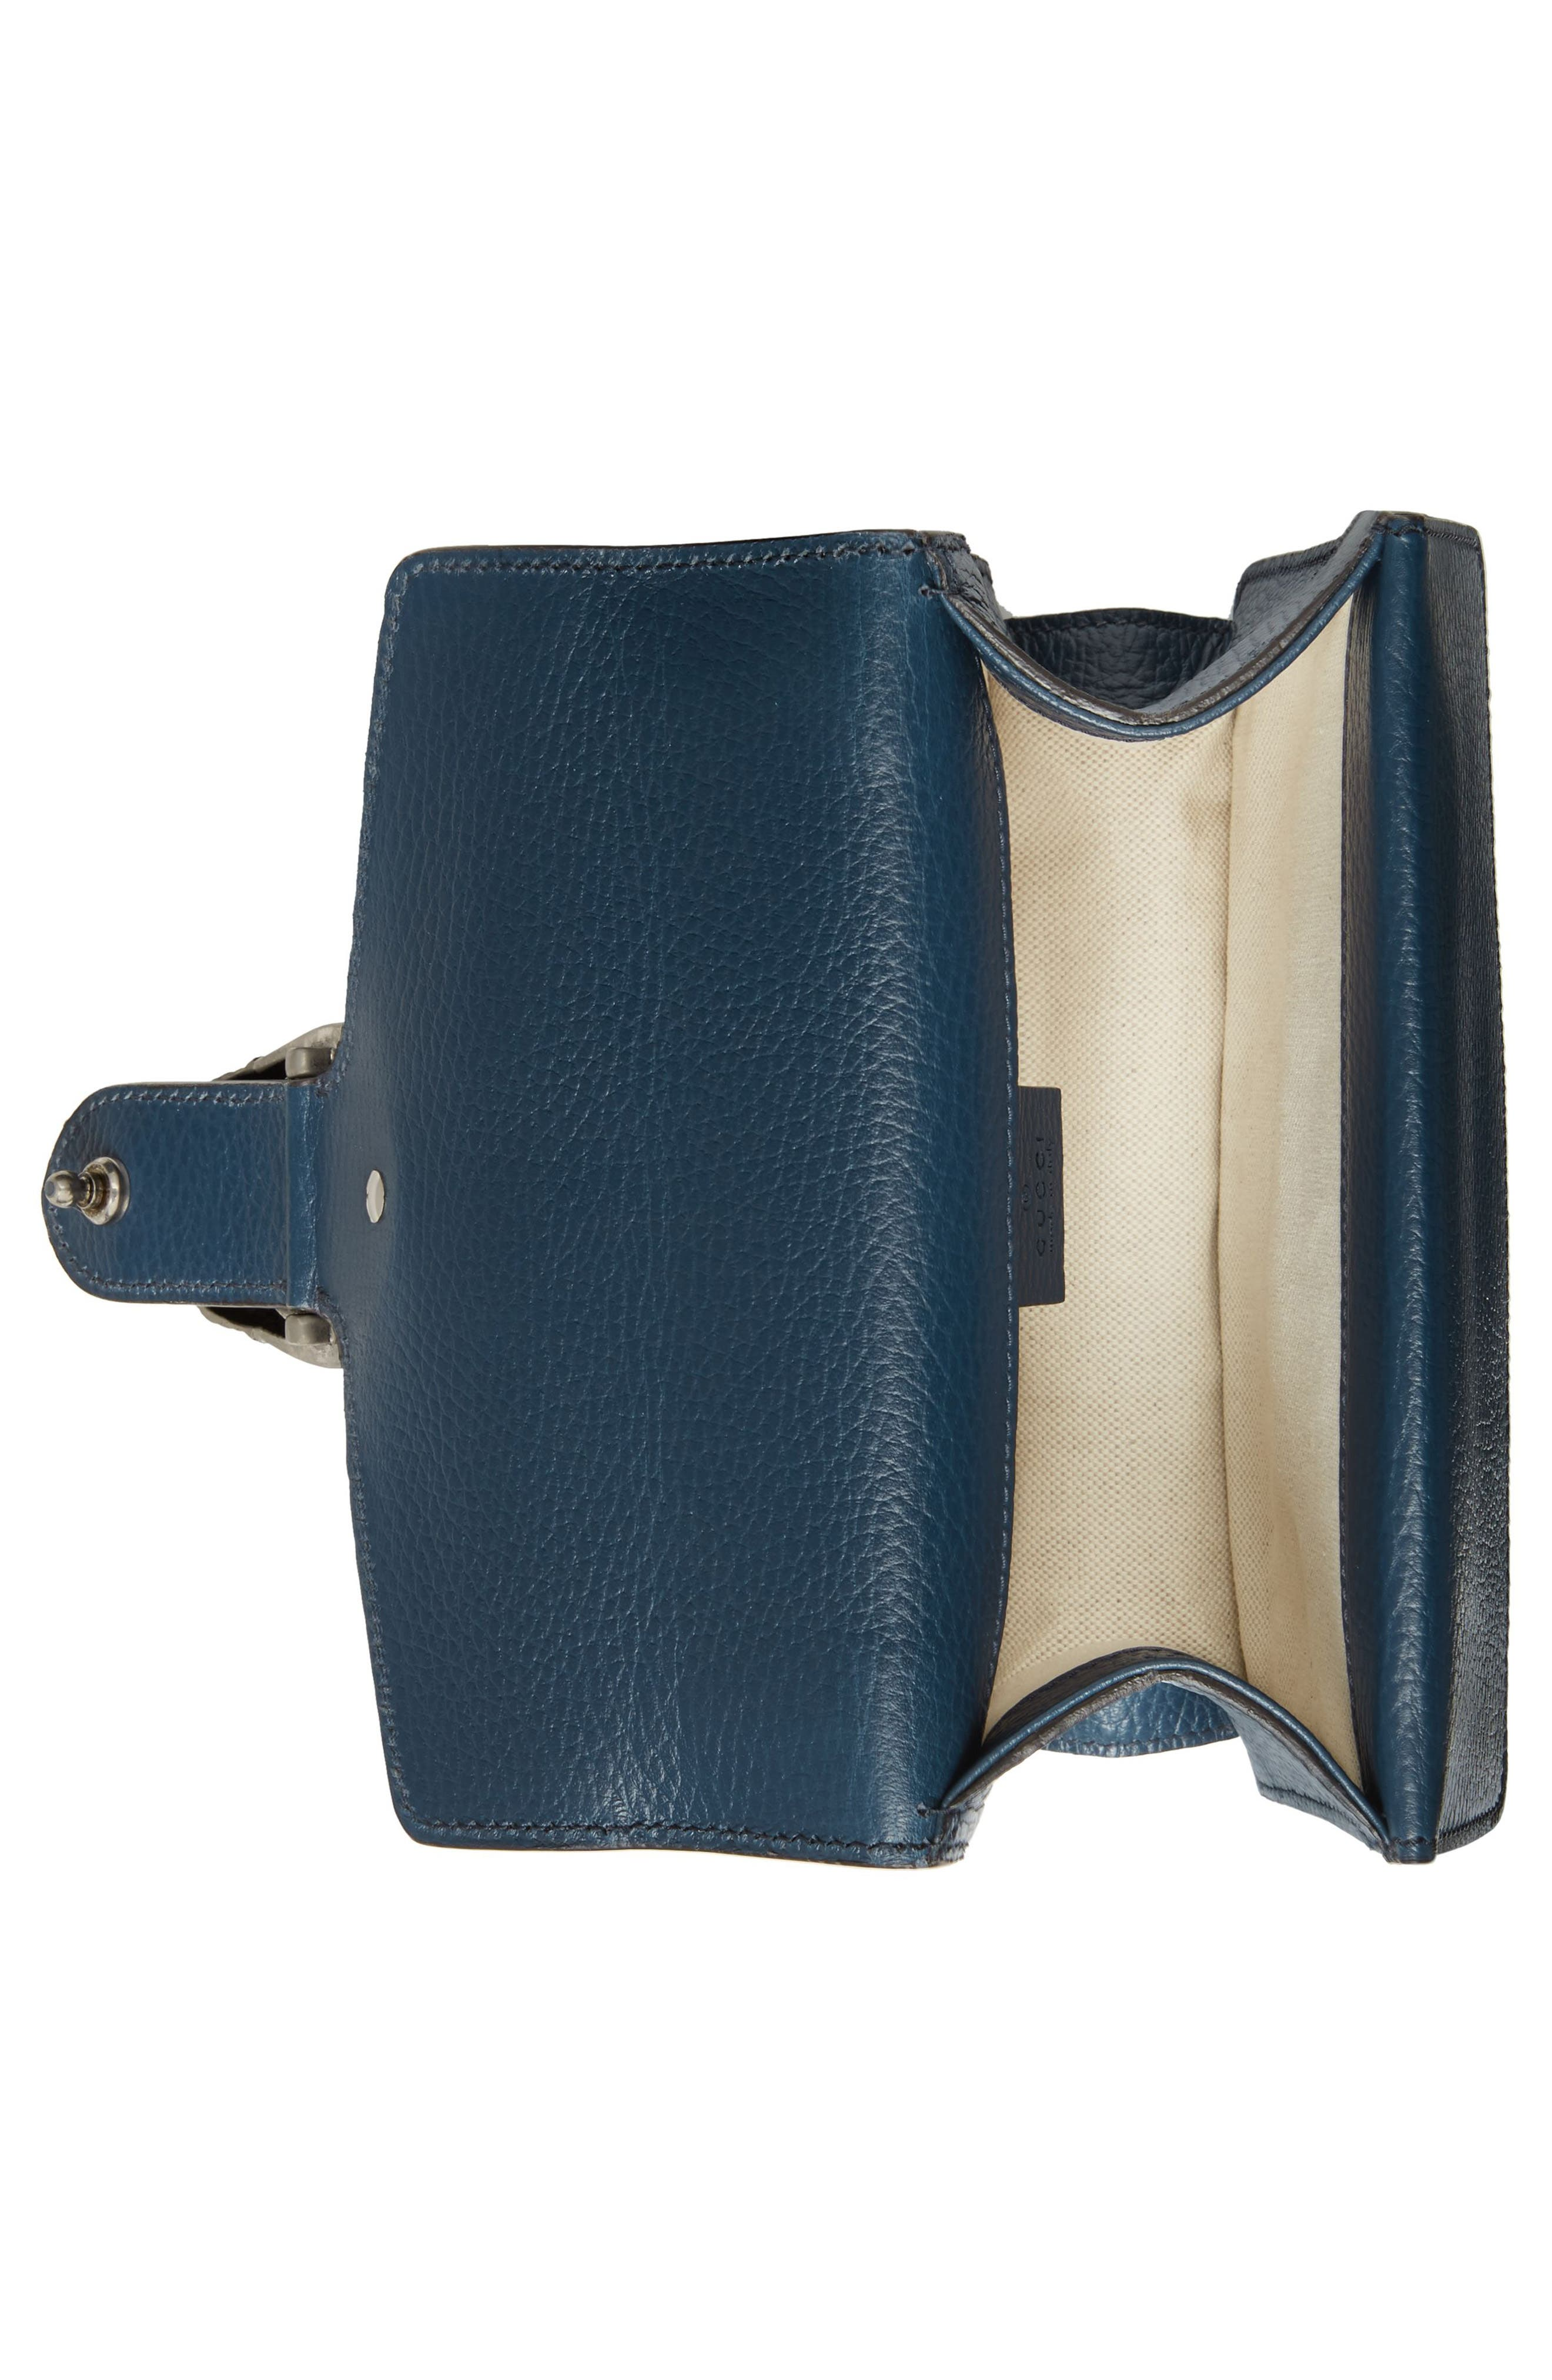 Mini Dionysus Leather Shoulder Bag,                             Alternate thumbnail 3, color,                             BLU AGATA/ MONTANA